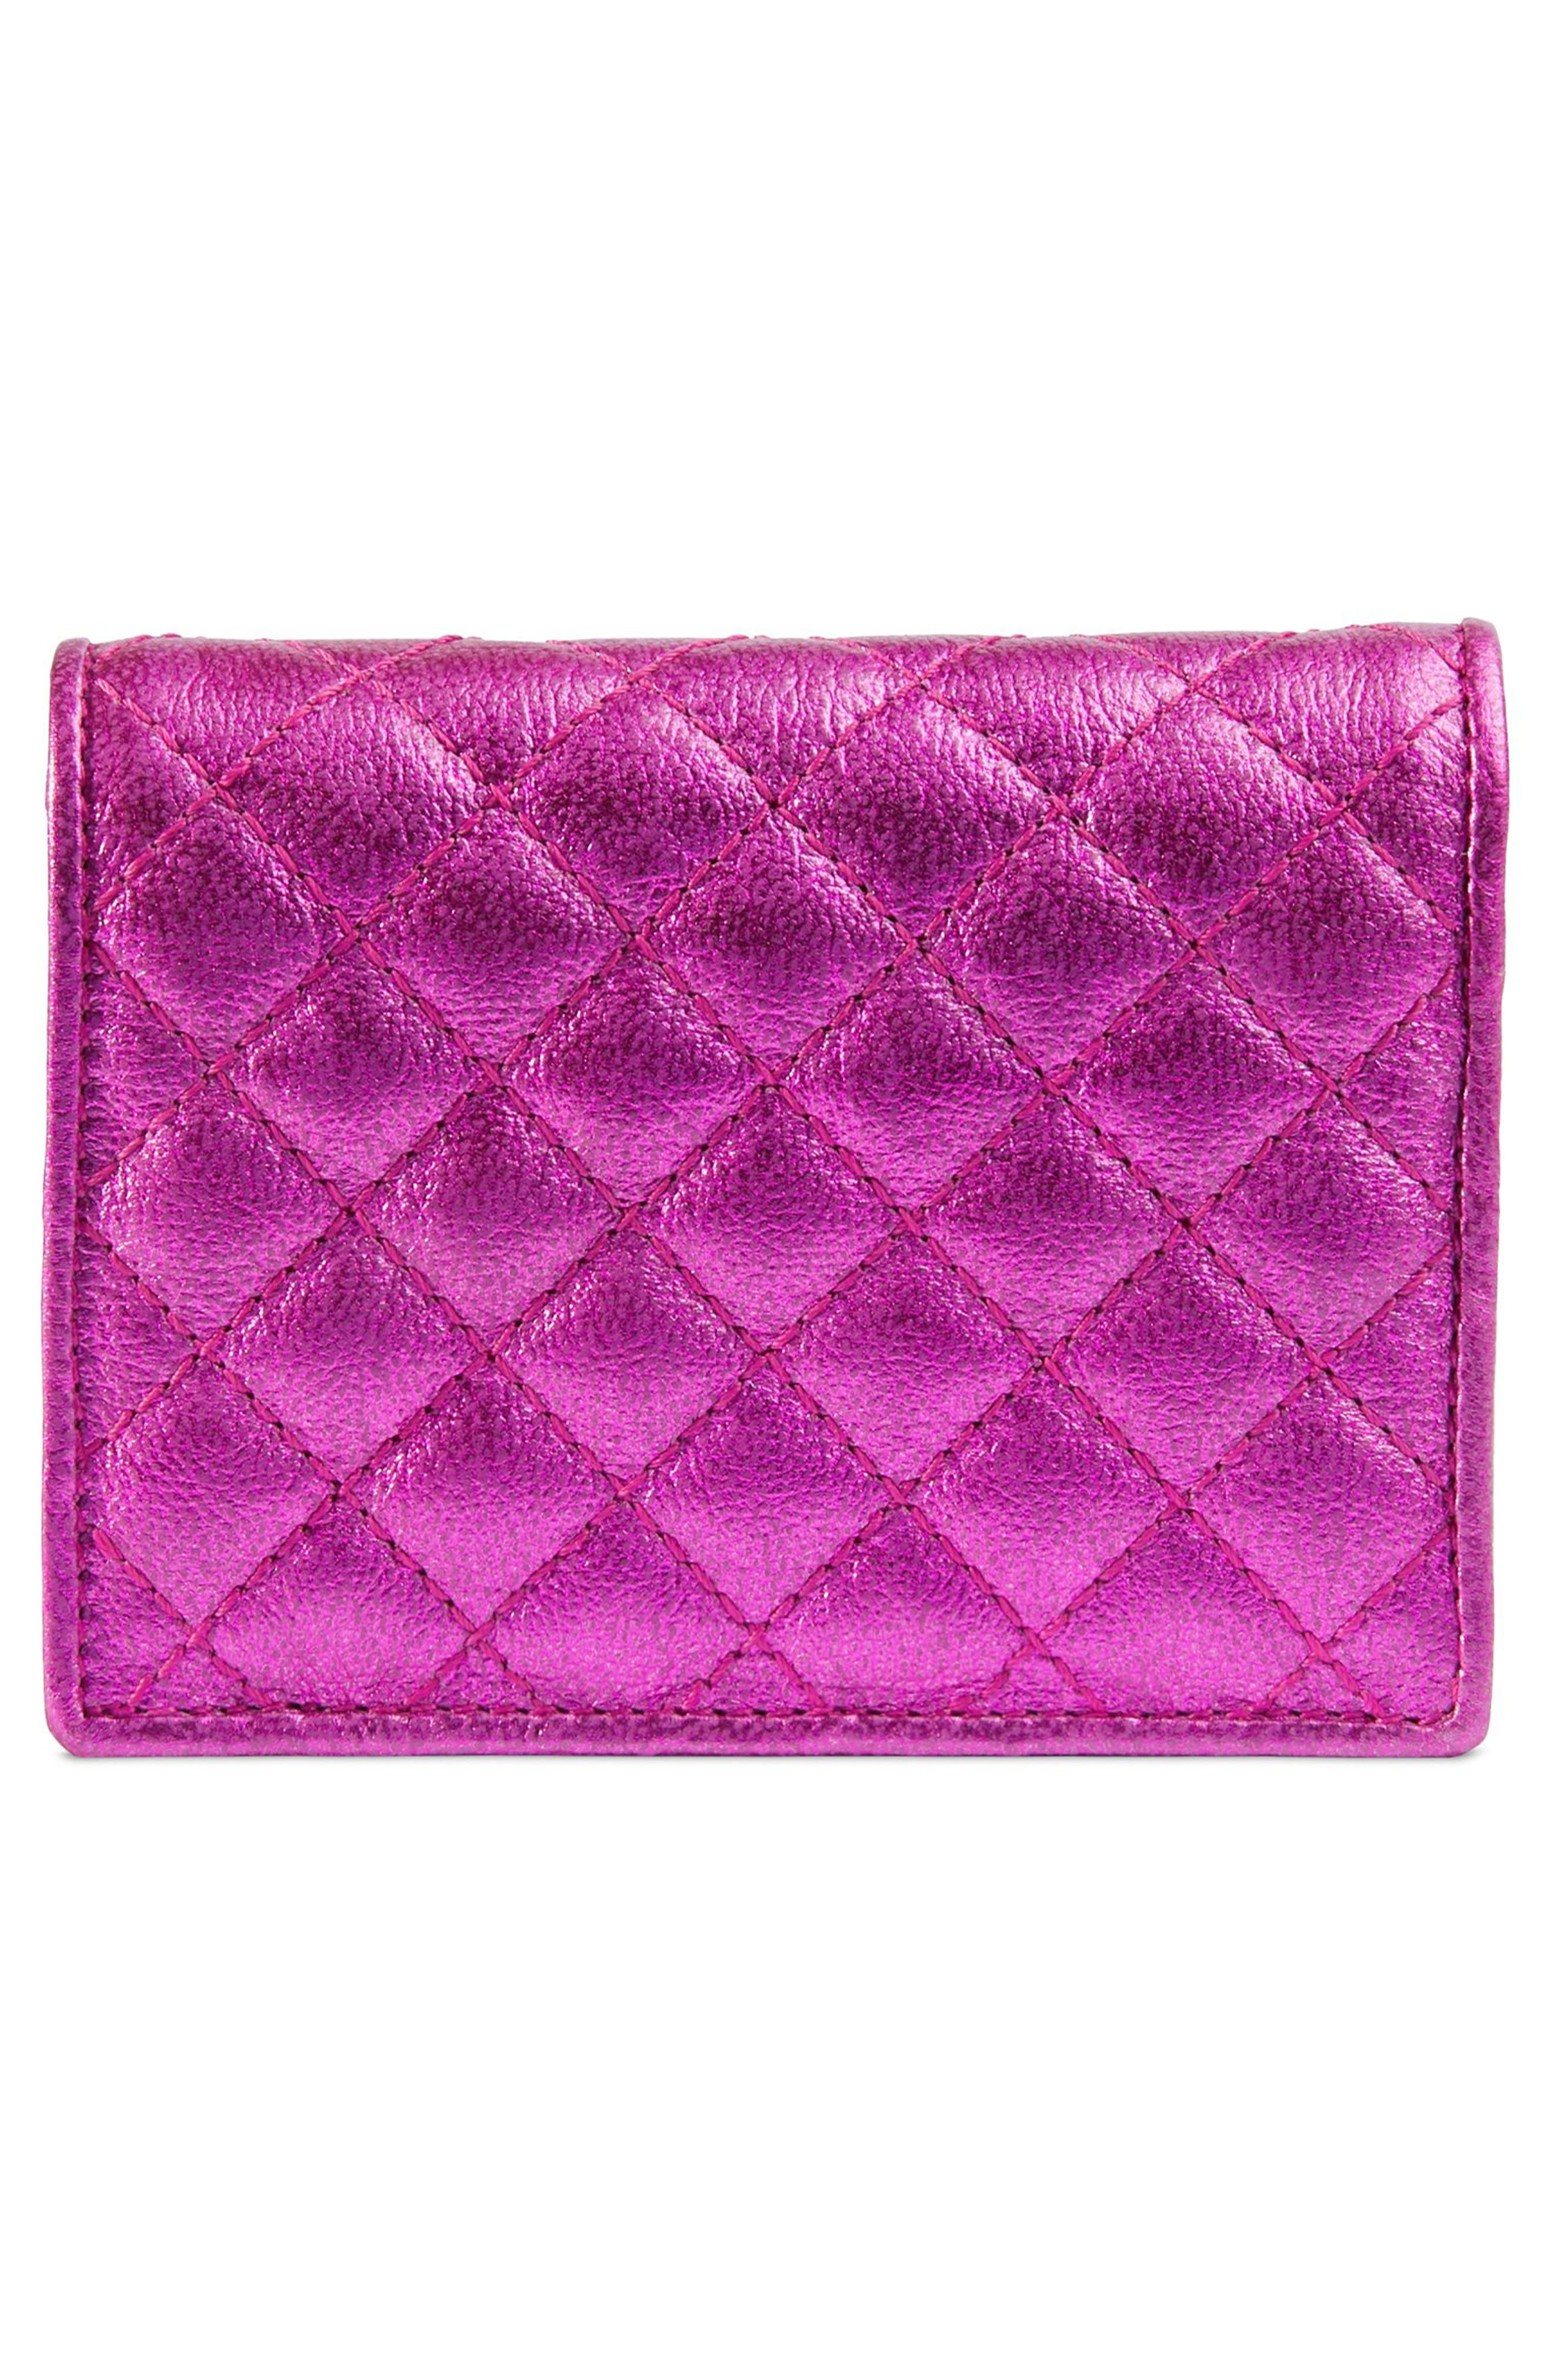 Quilted Leather Card Case,                             Alternate thumbnail 3, color,                             FUXIA